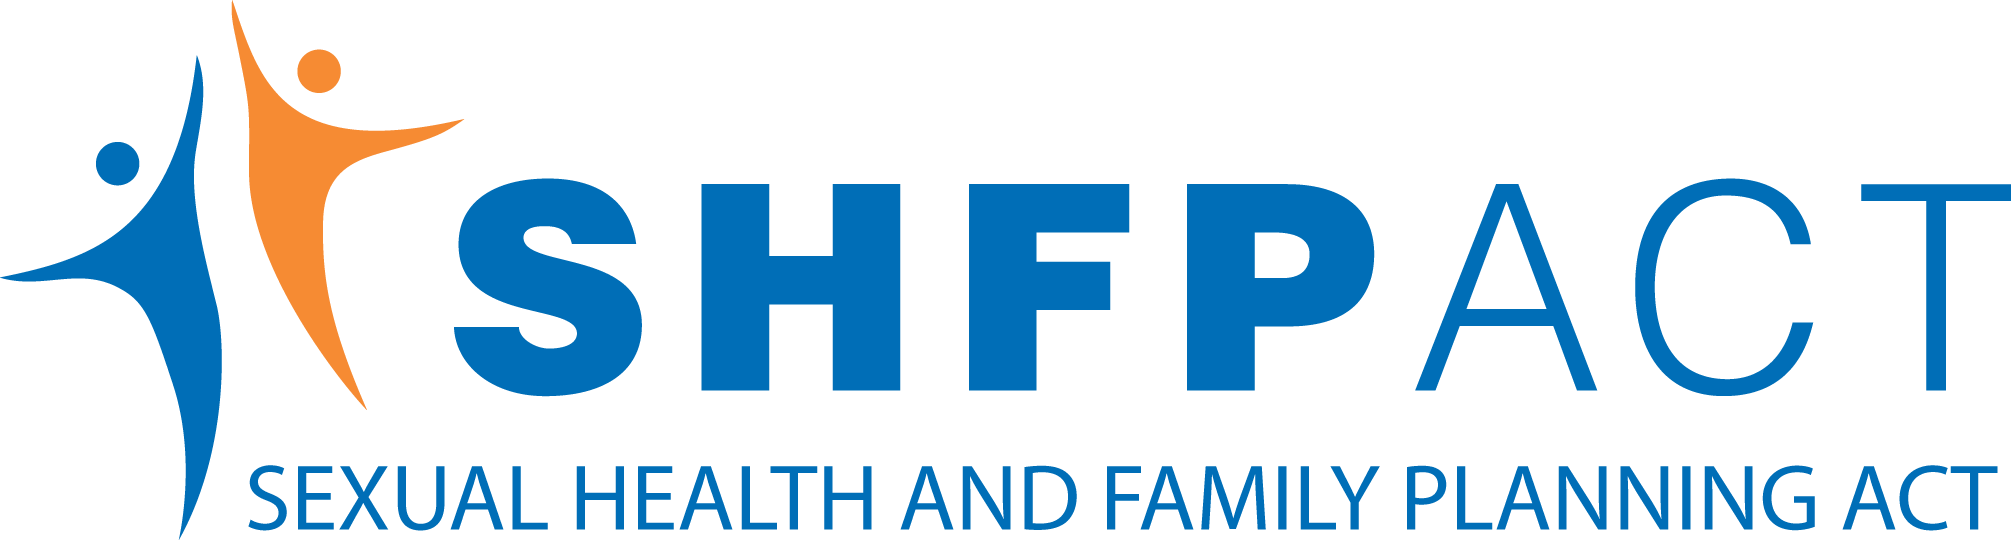 Sexual Health and Family Planning